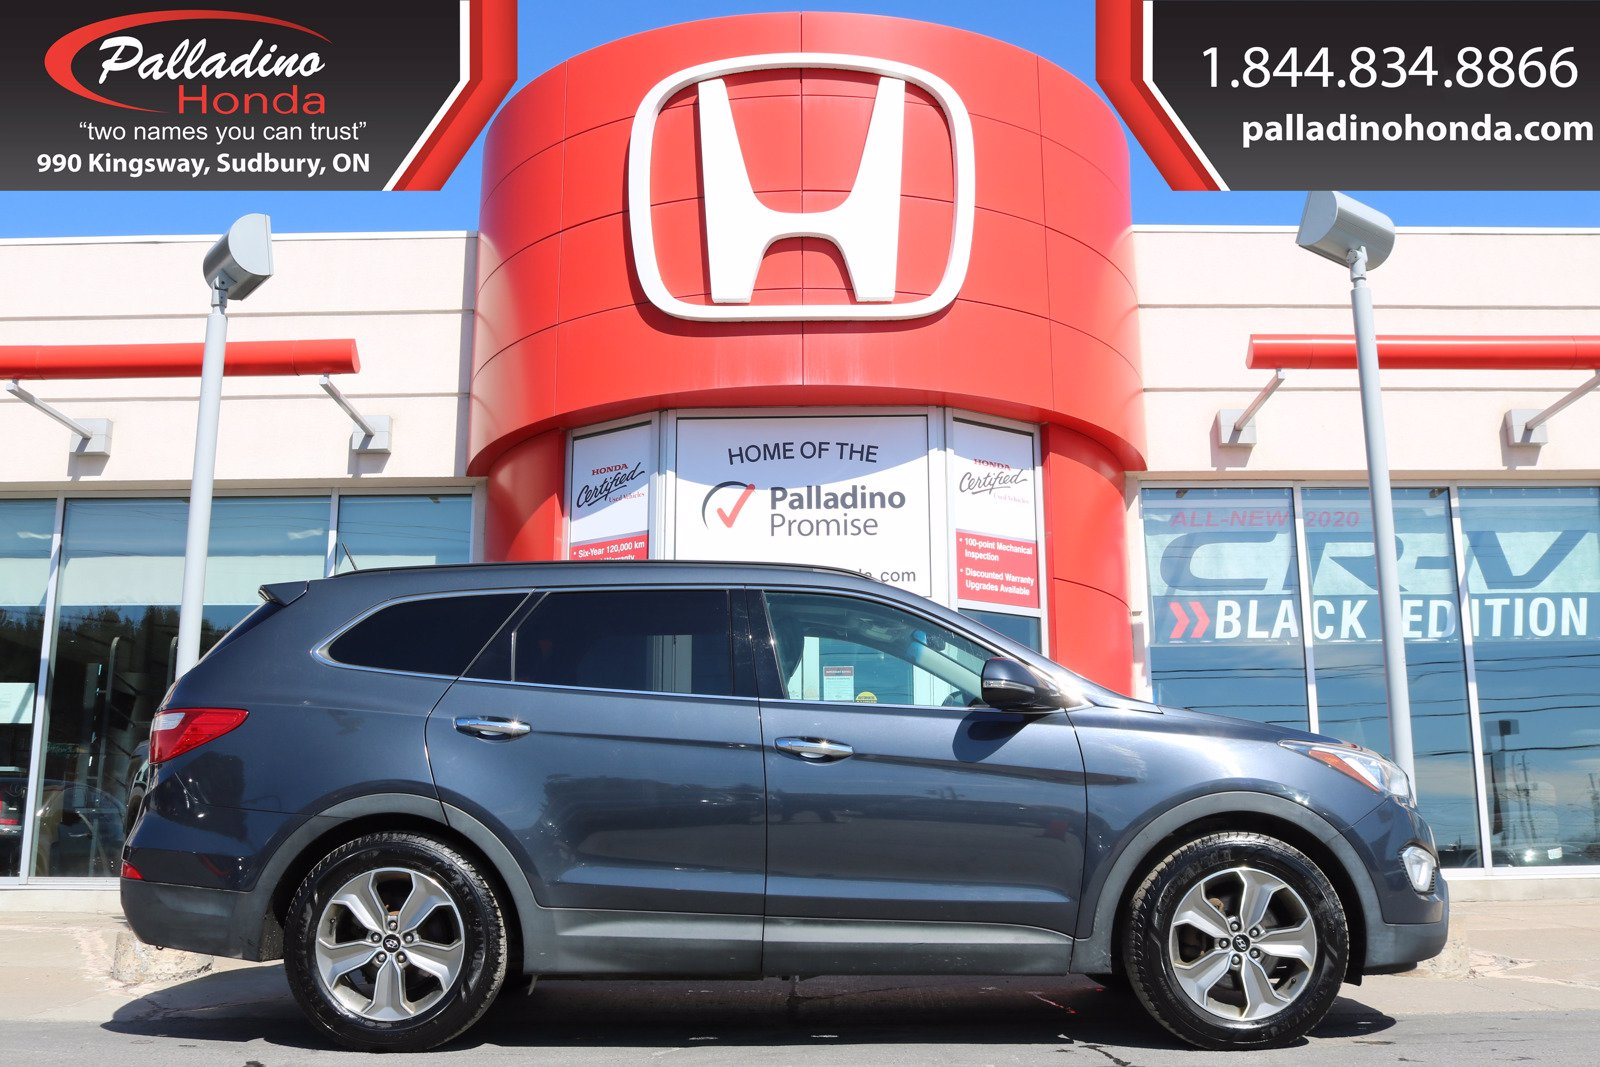 Pre-Owned 2013 Hyundai Santa Fe Luxury- ALL WHEEL DRIVE, THIRD ROW SEATS